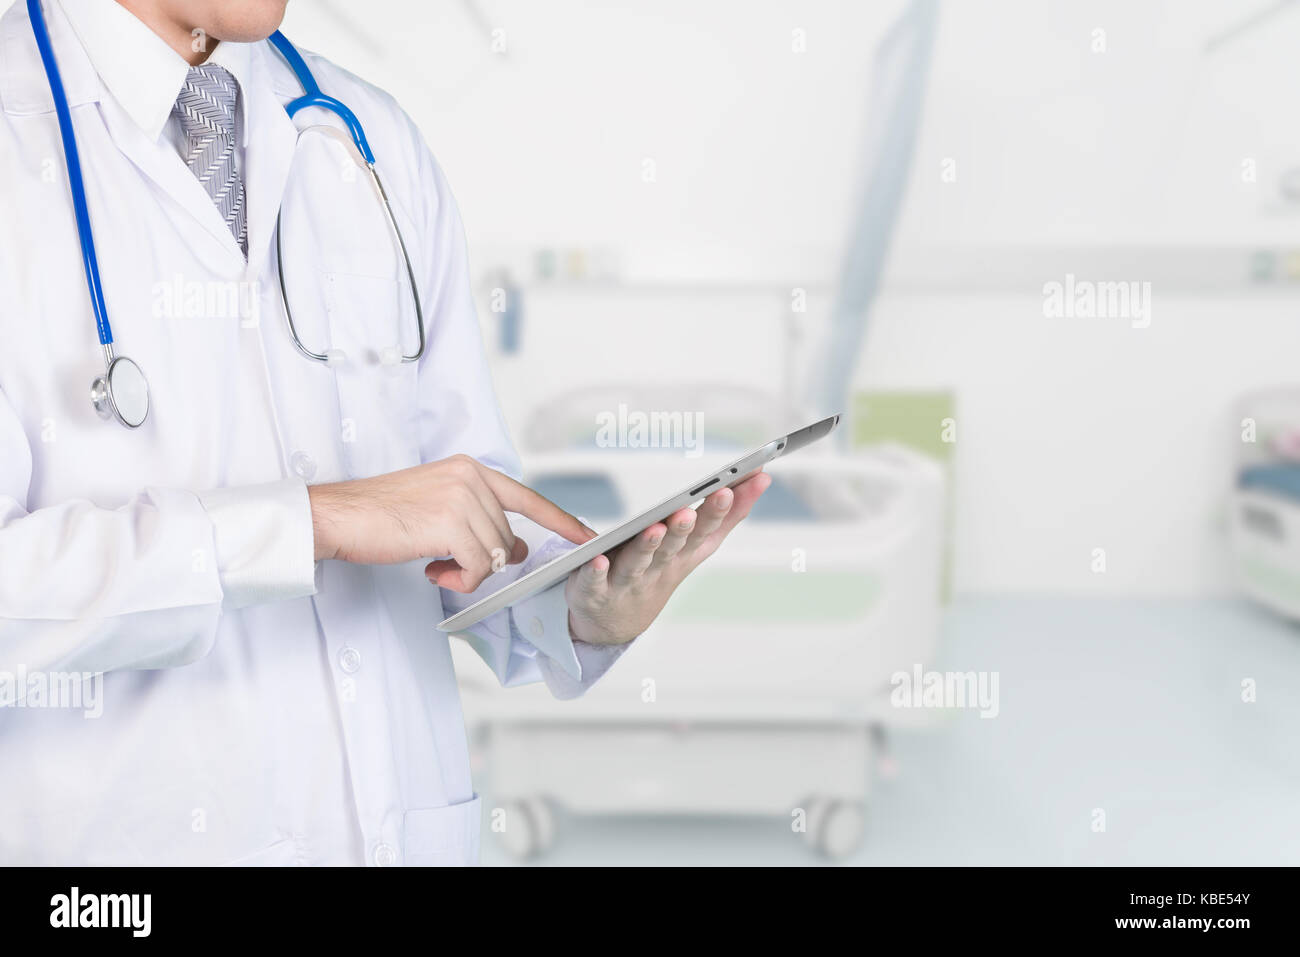 Doctor using digital tablet contact with patient. Concepts of 4.0 technology communication. copy space. - Stock Image